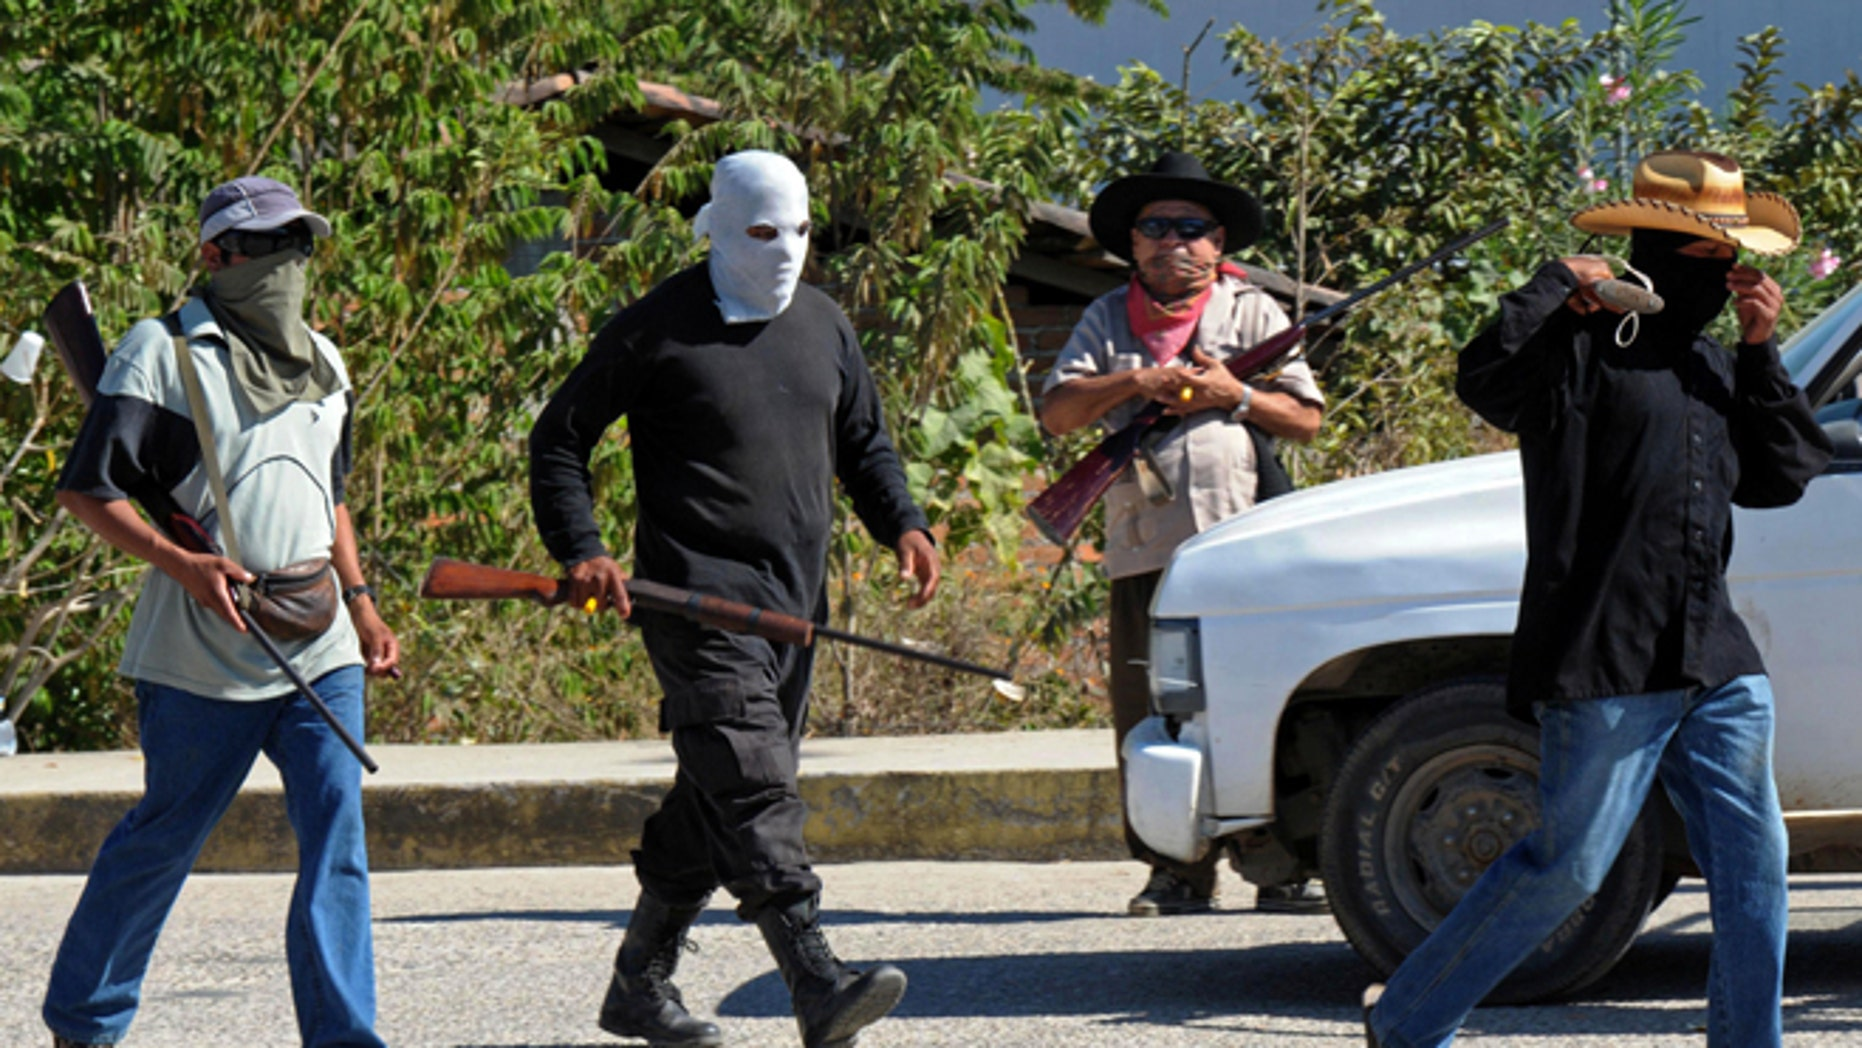 Civilians wearing ski masks or bandanas and carrying small arms, man a checkpoint in Teconoapa, in the Mexican state of Guerrero, Friday, Jan. 11, 2013. Several hundred civilians have taken up arms in two towns in the southwestern Mexico state and are arresting people suspected of crimes and imposing a curfew. Leaders said they were acting against crime and insecurity. Guerrero Gov. Angel Aguirre Rivero responded Friday by announcing that security in the region would be bolstered by sending in Mexican soldiers and marines and federal and state police officers. (AP Photo/Bernandino Hernandez)